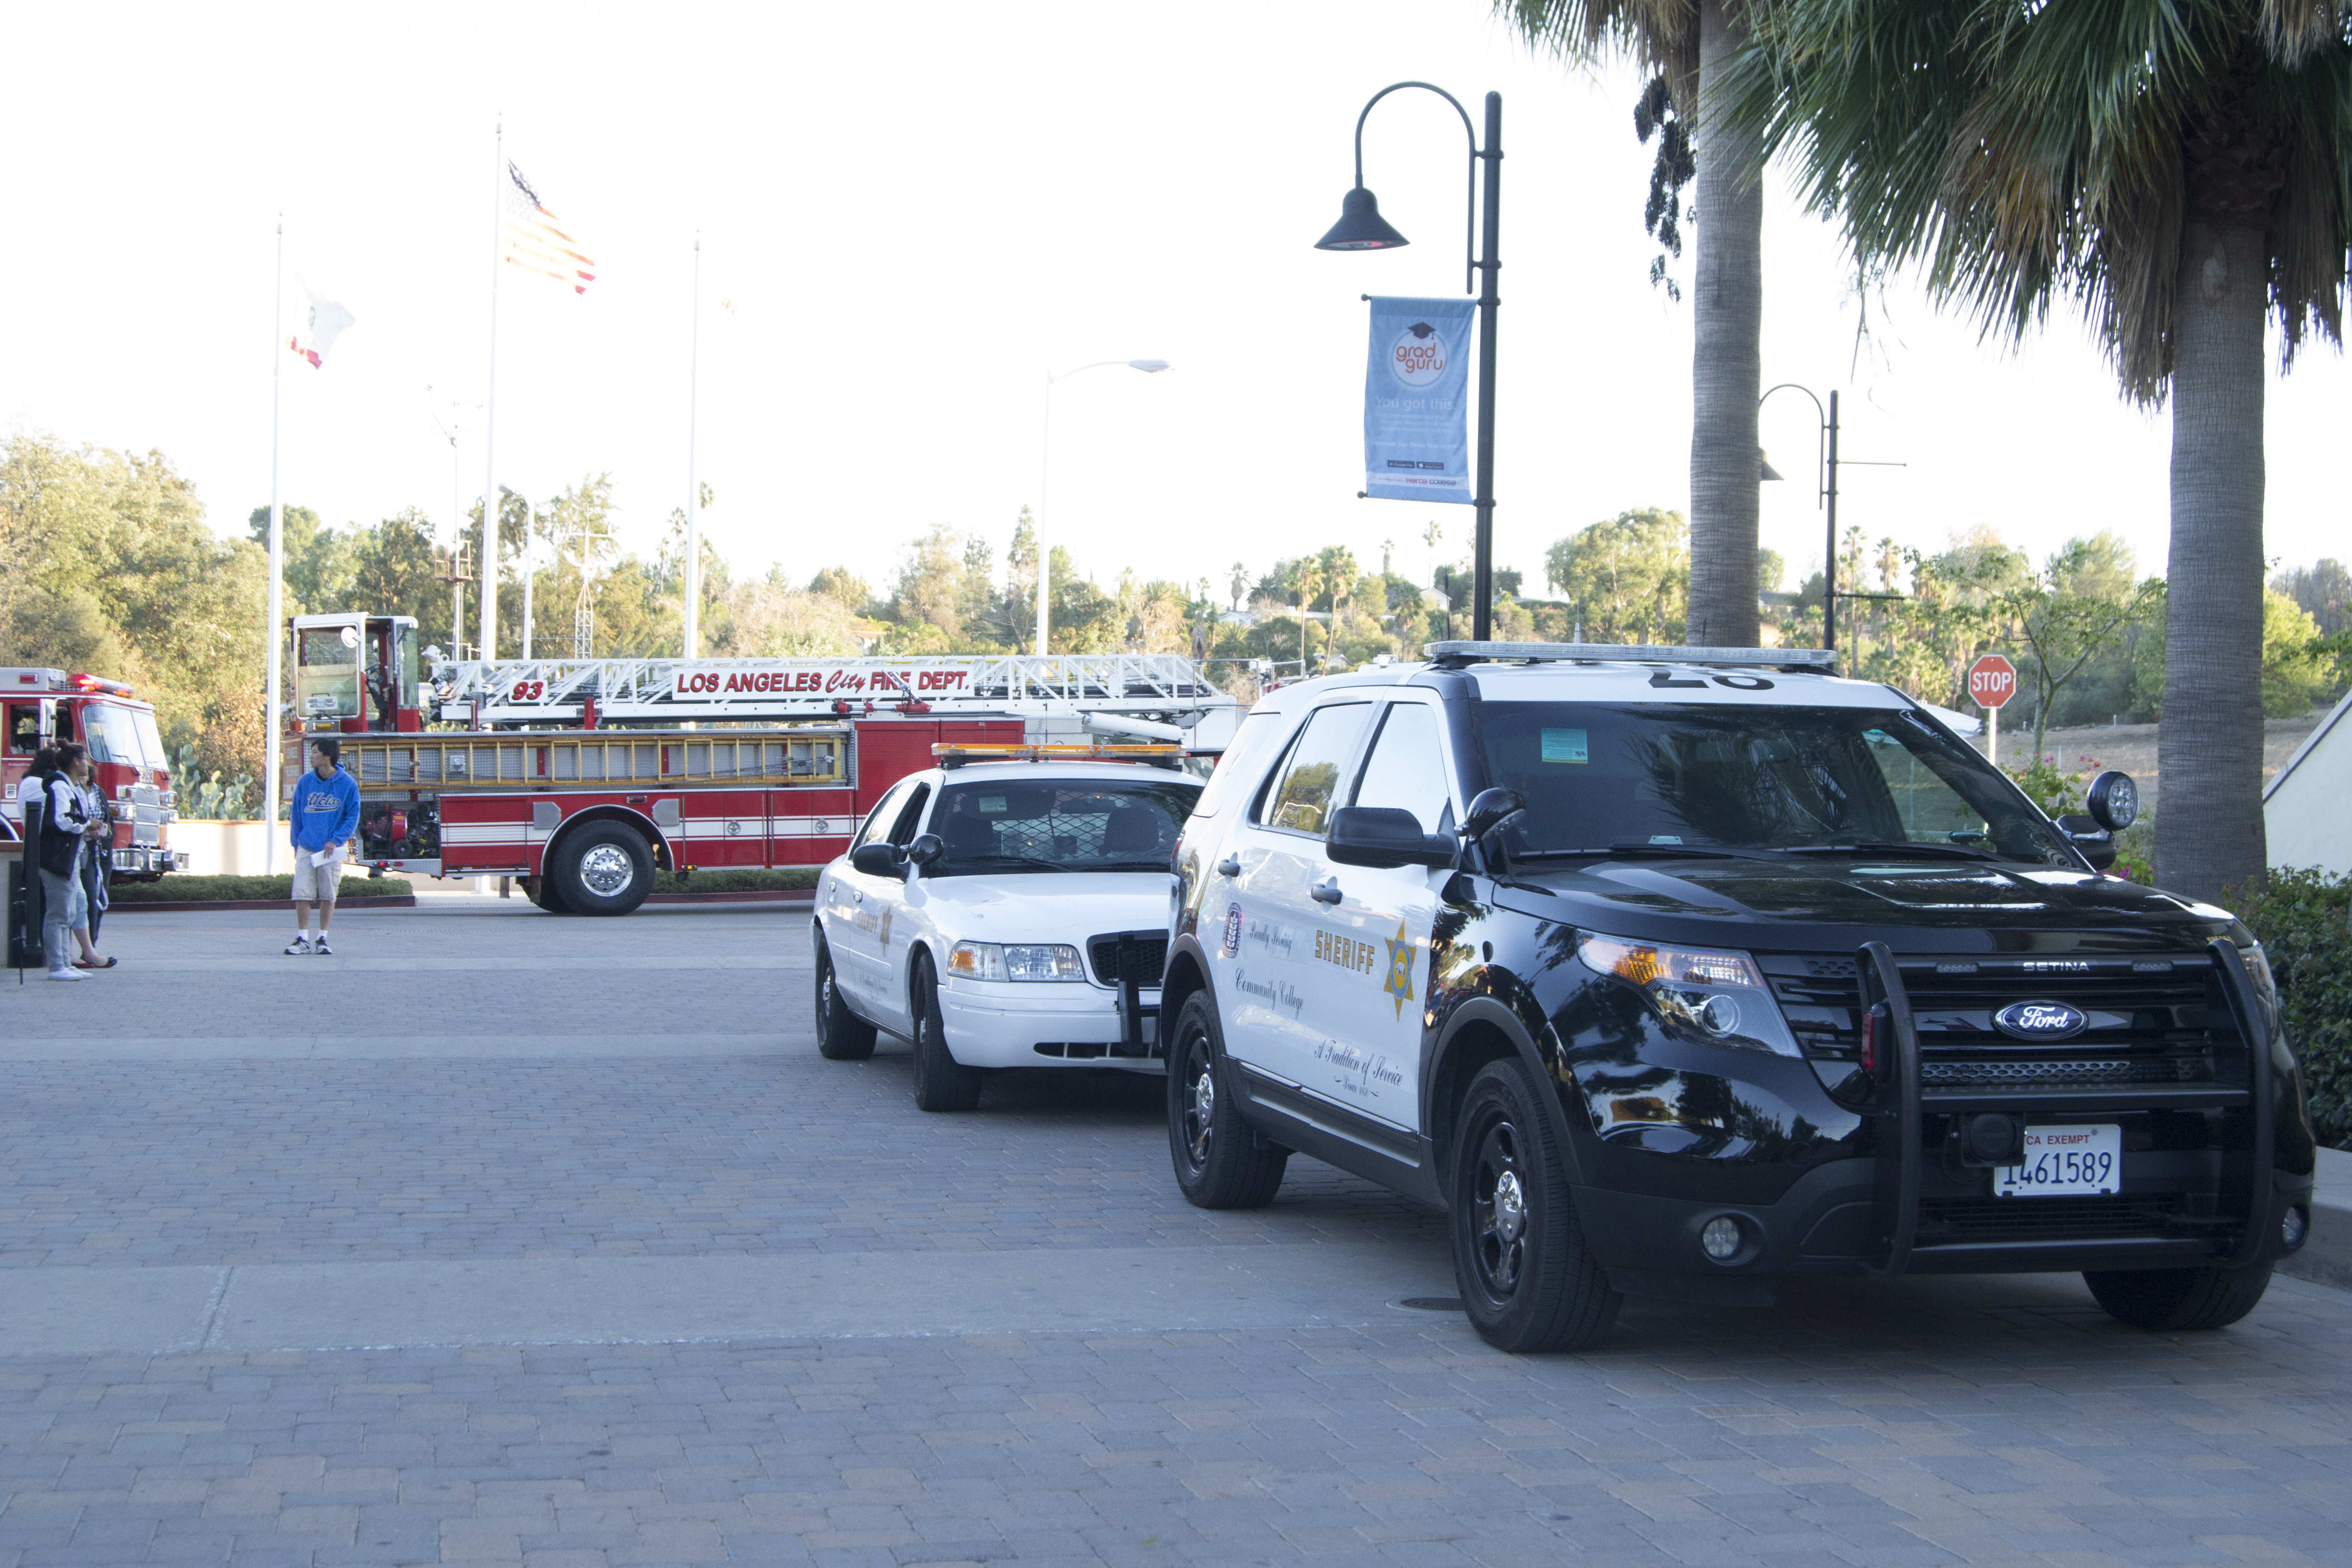 Smoke alarm goes off in Student Services Building, students and faculty evacuated